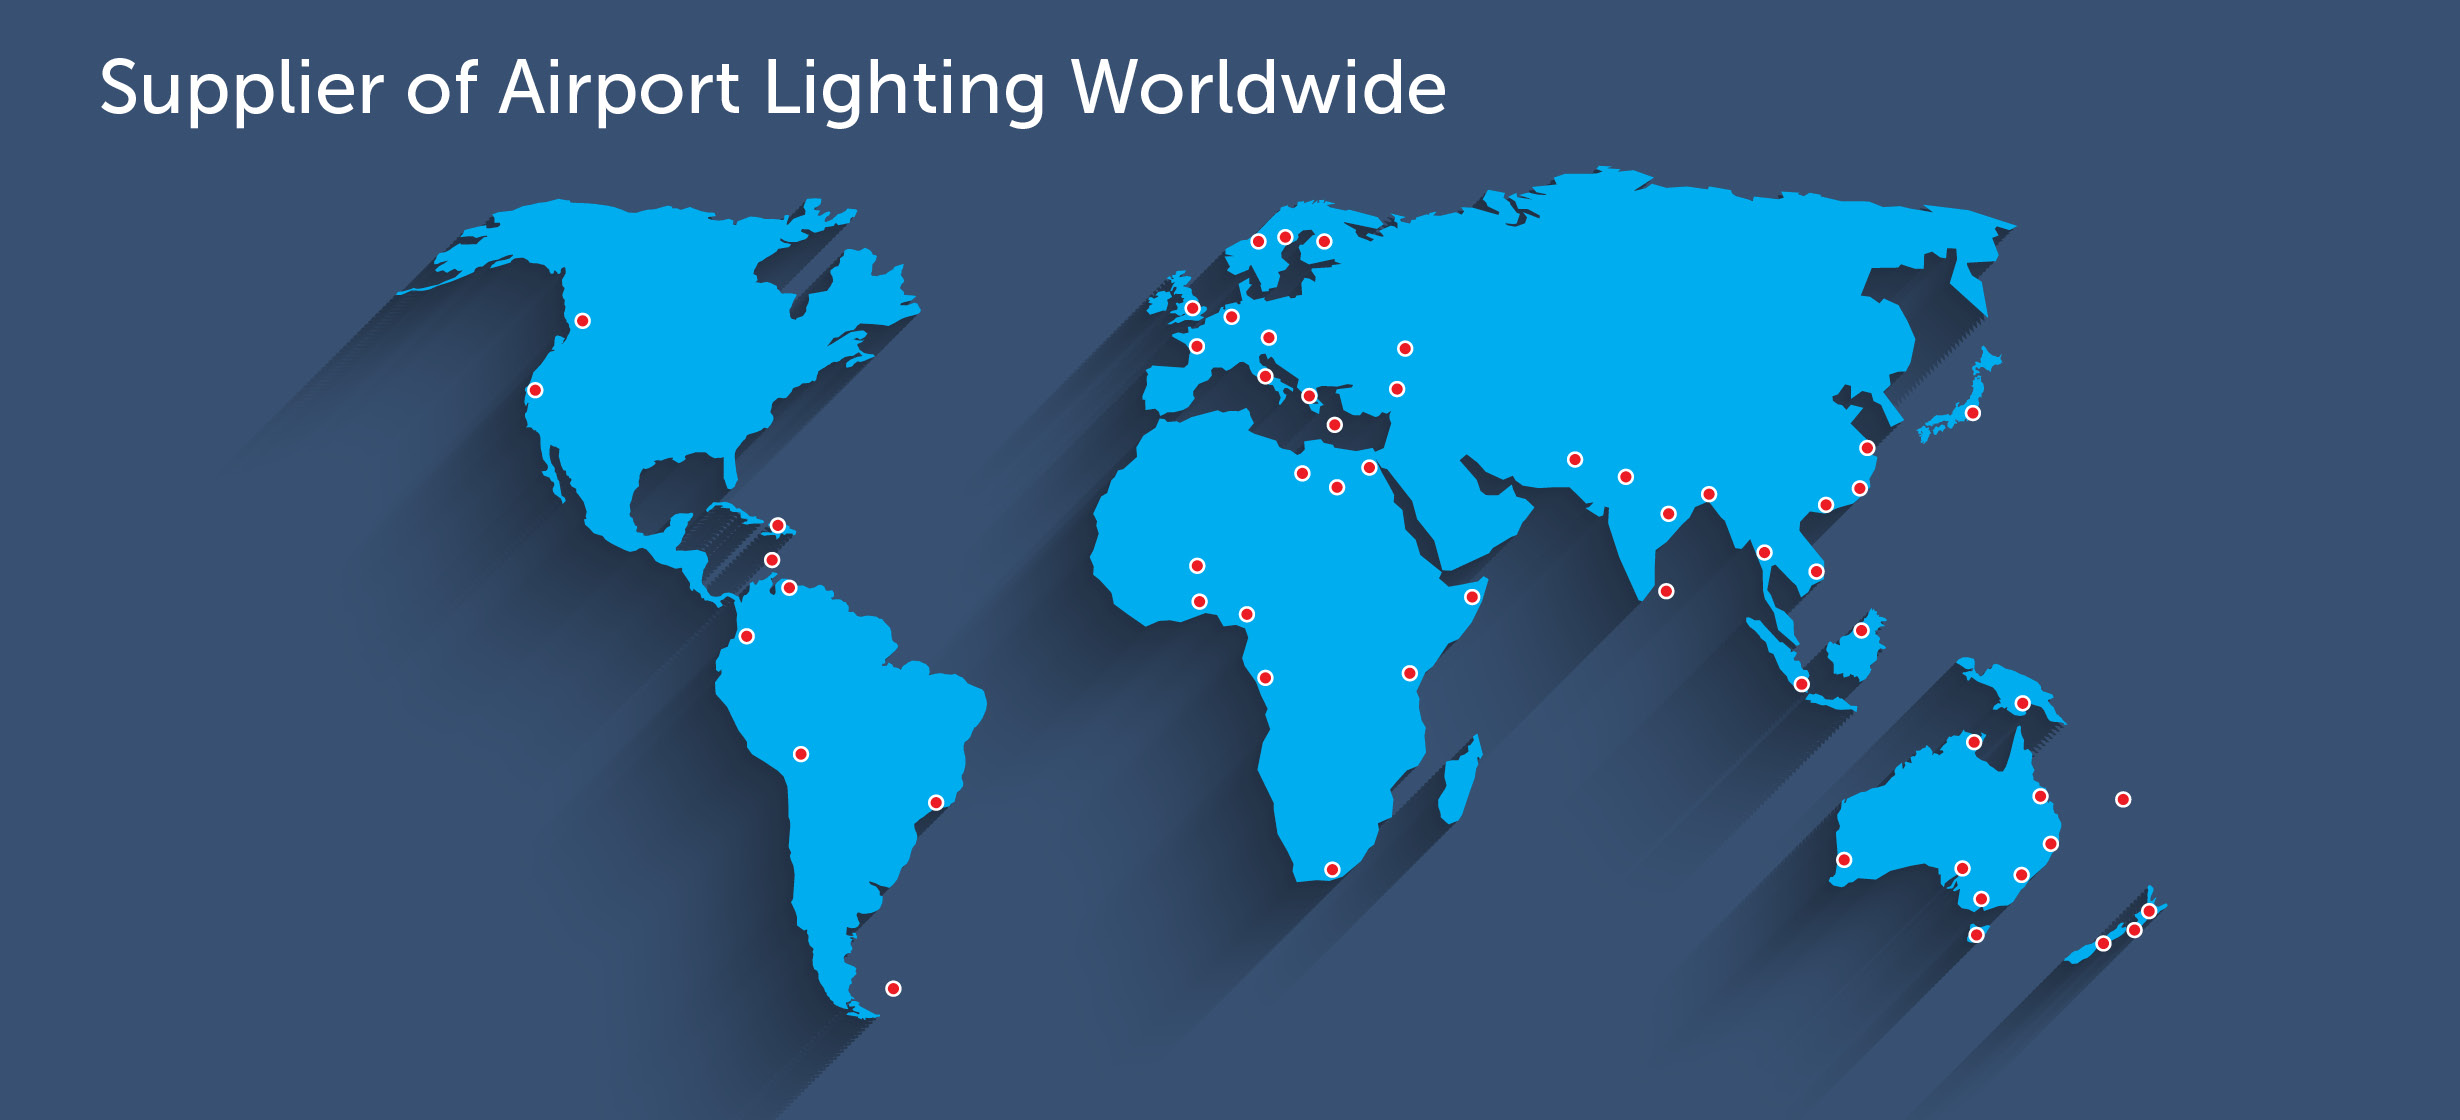 Supplier of Airport Lighting Worldwide